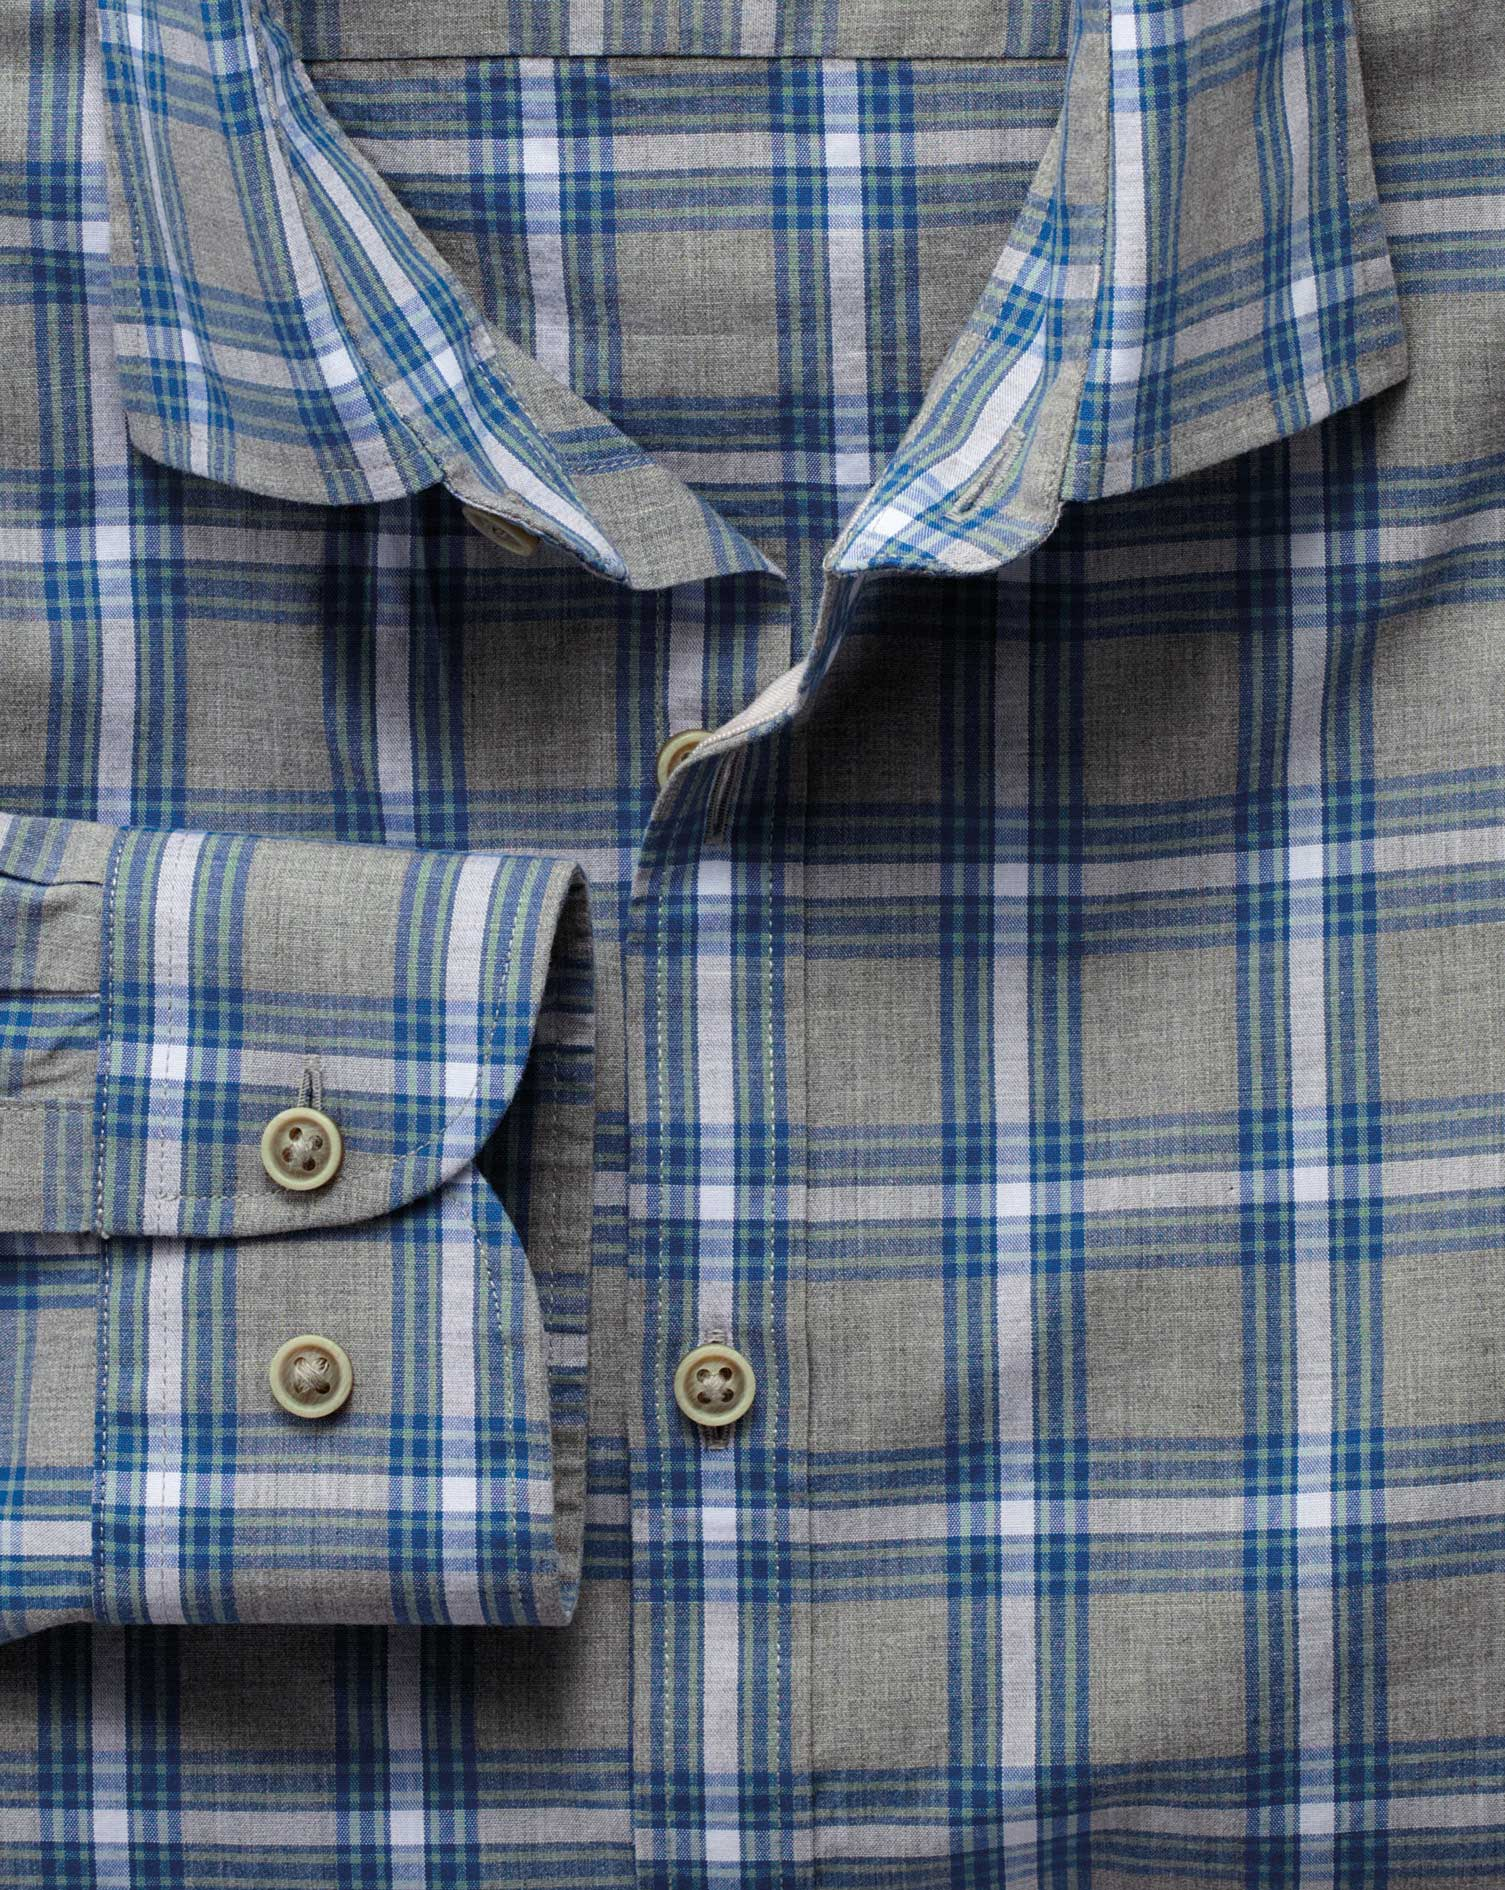 Extra Slim Fit Grey and Sky Blue Check Heather Cotton Shirt Single Cuff Size Small by Charles Tyrwhi